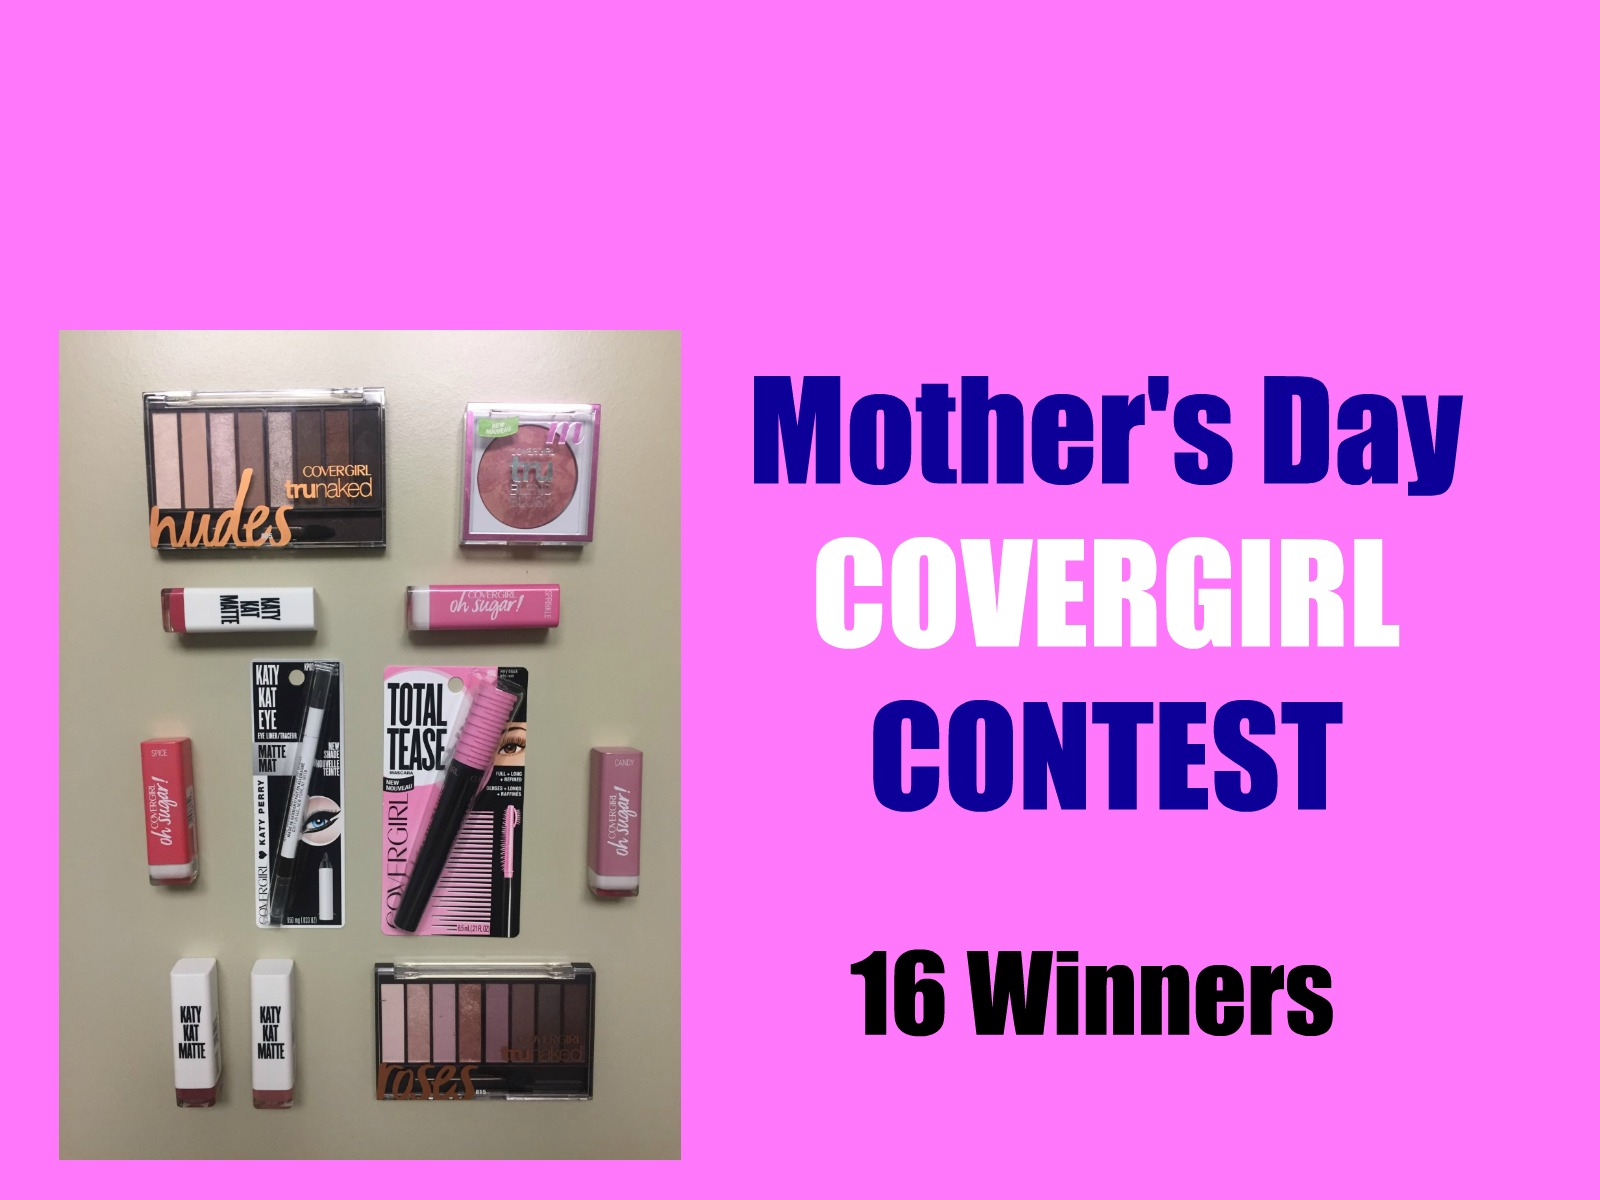 COVERGIRL Contest: 16 Winners!!!